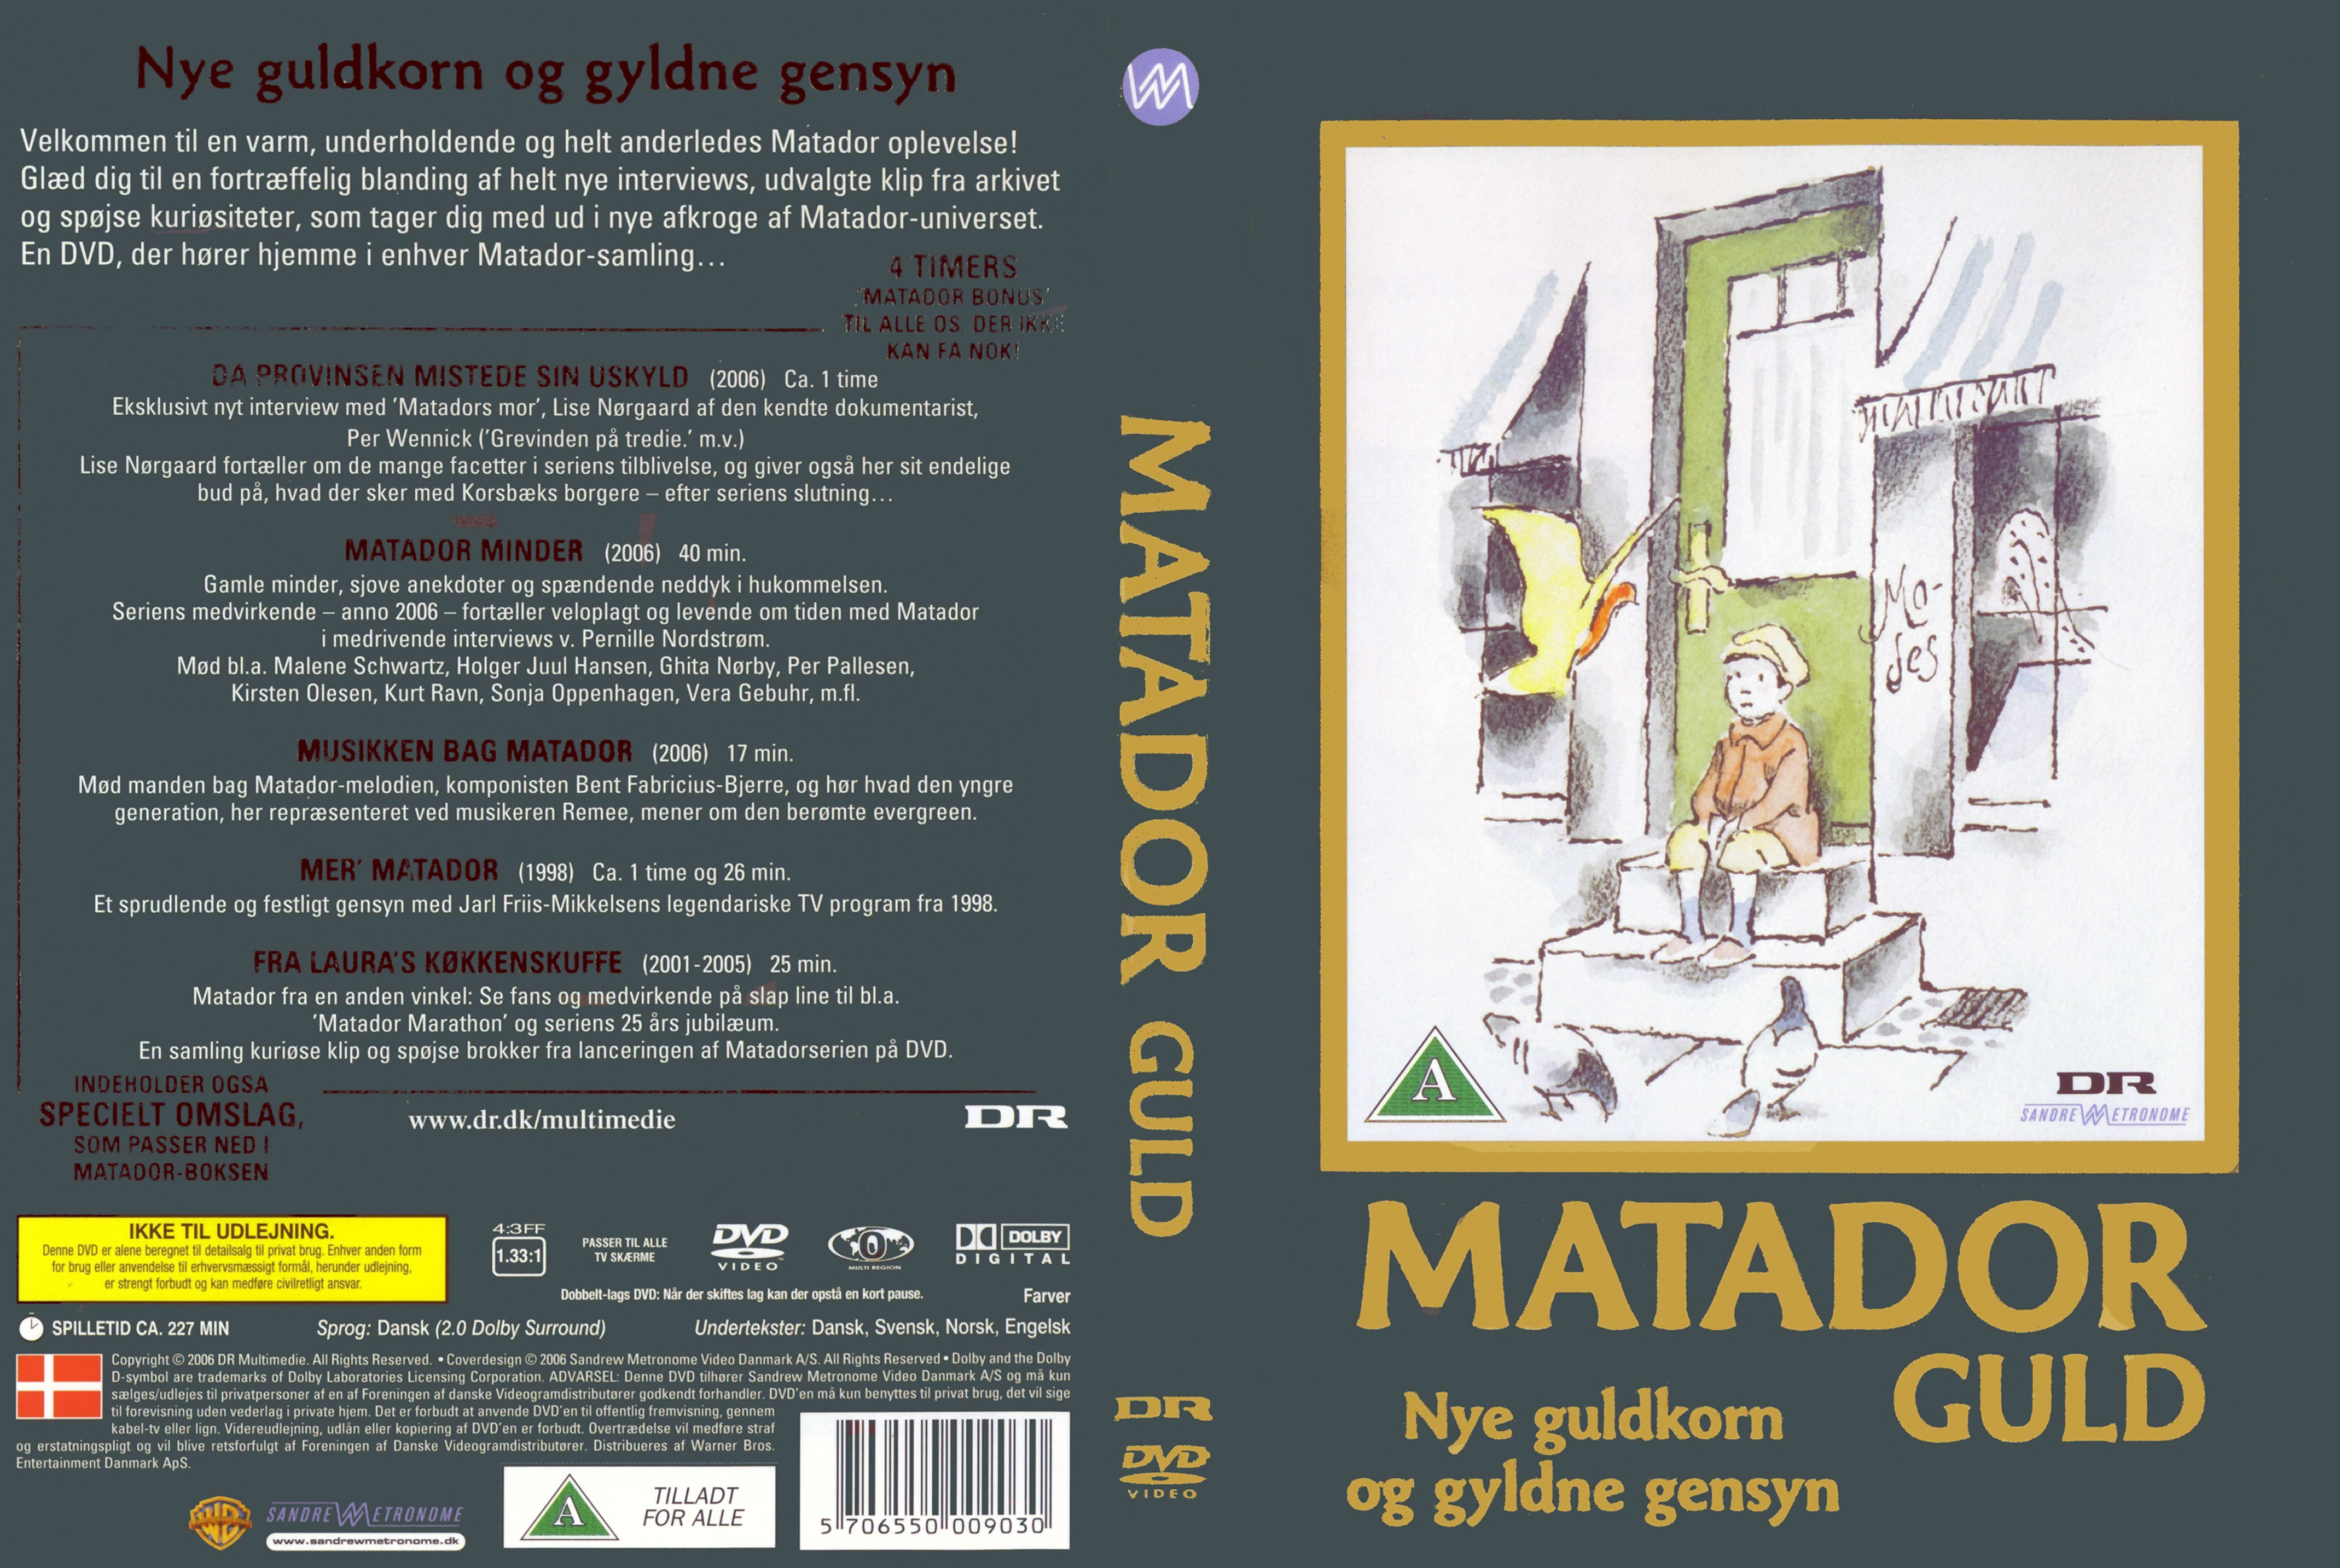 Velsete COVERS.BOX.SK ::: Matador Guld - high quality DVD / Blueray / Movie JA-84